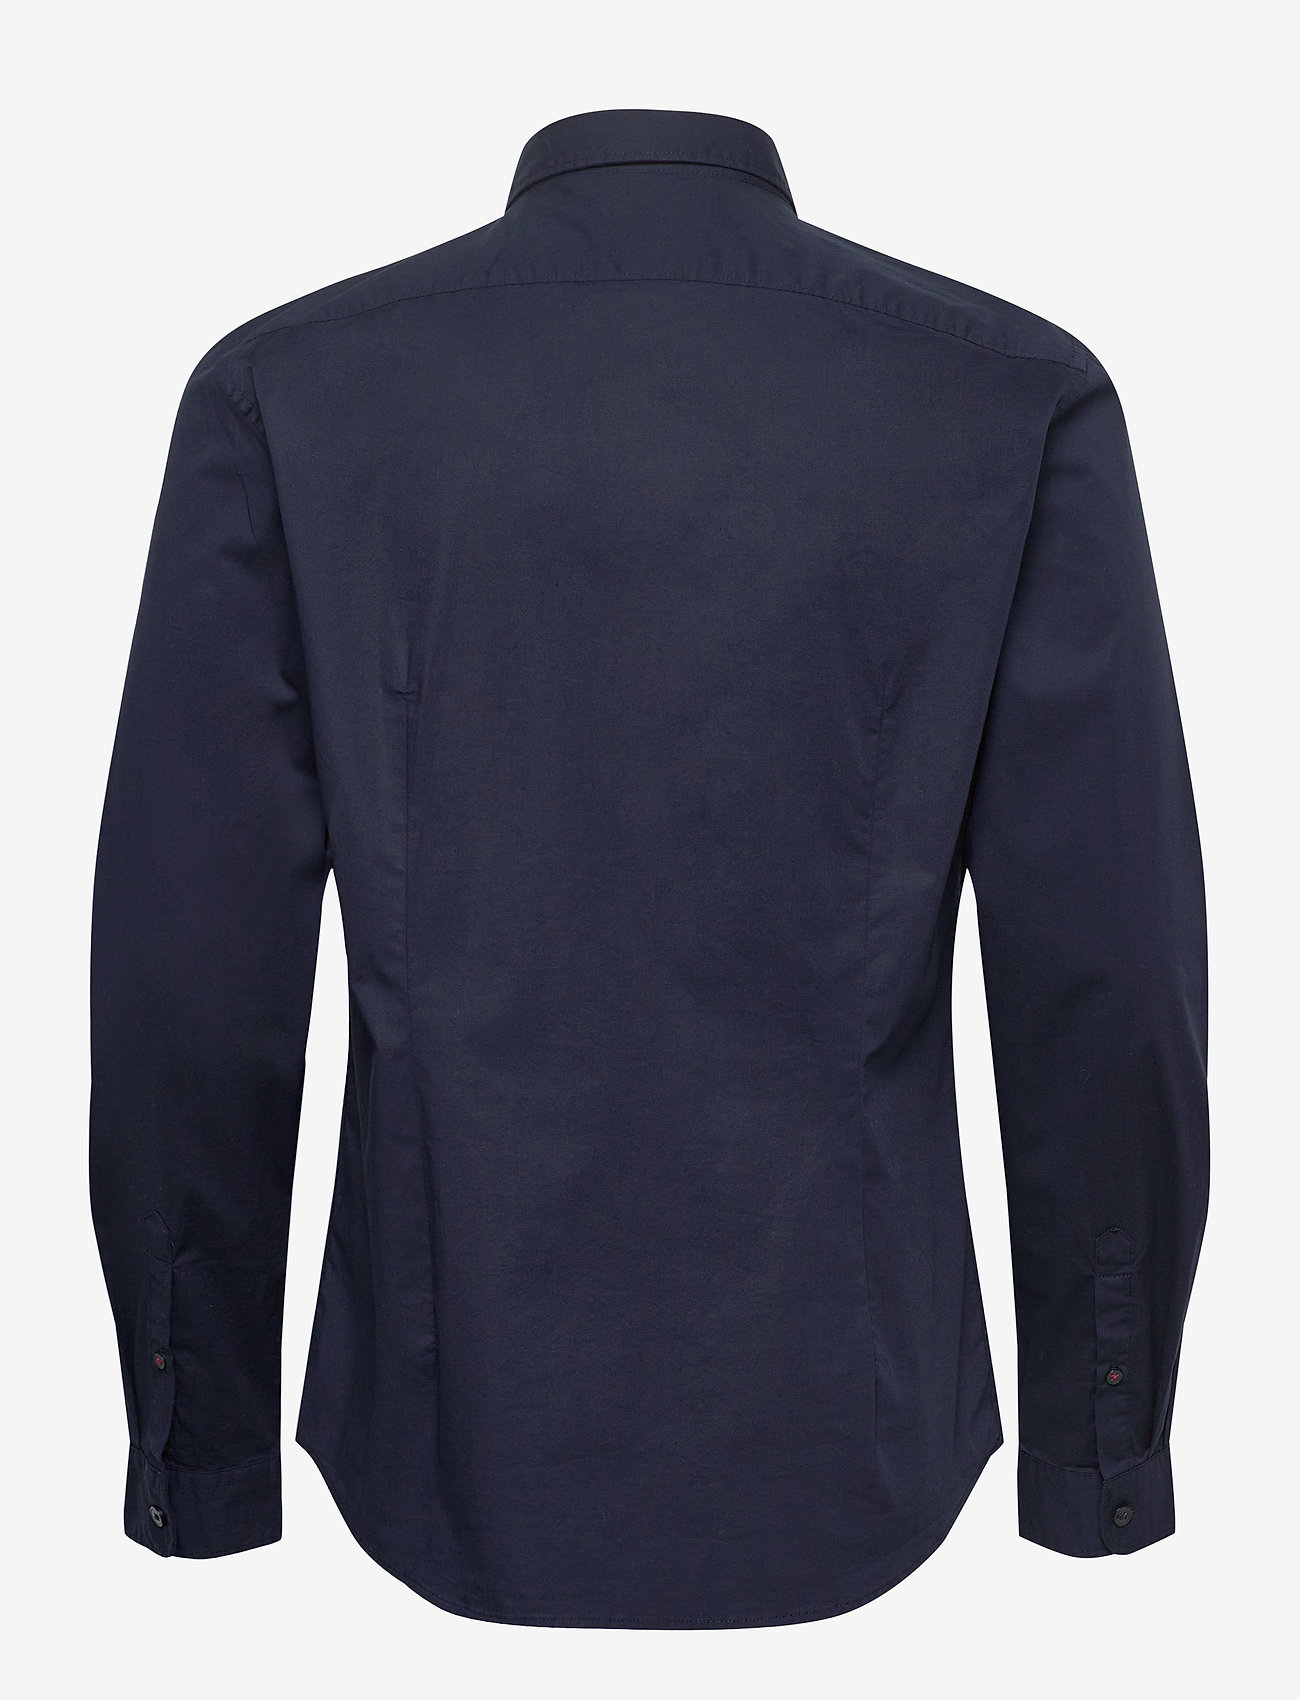 Esprit Casual - Shirts woven - business shirts - navy - 1